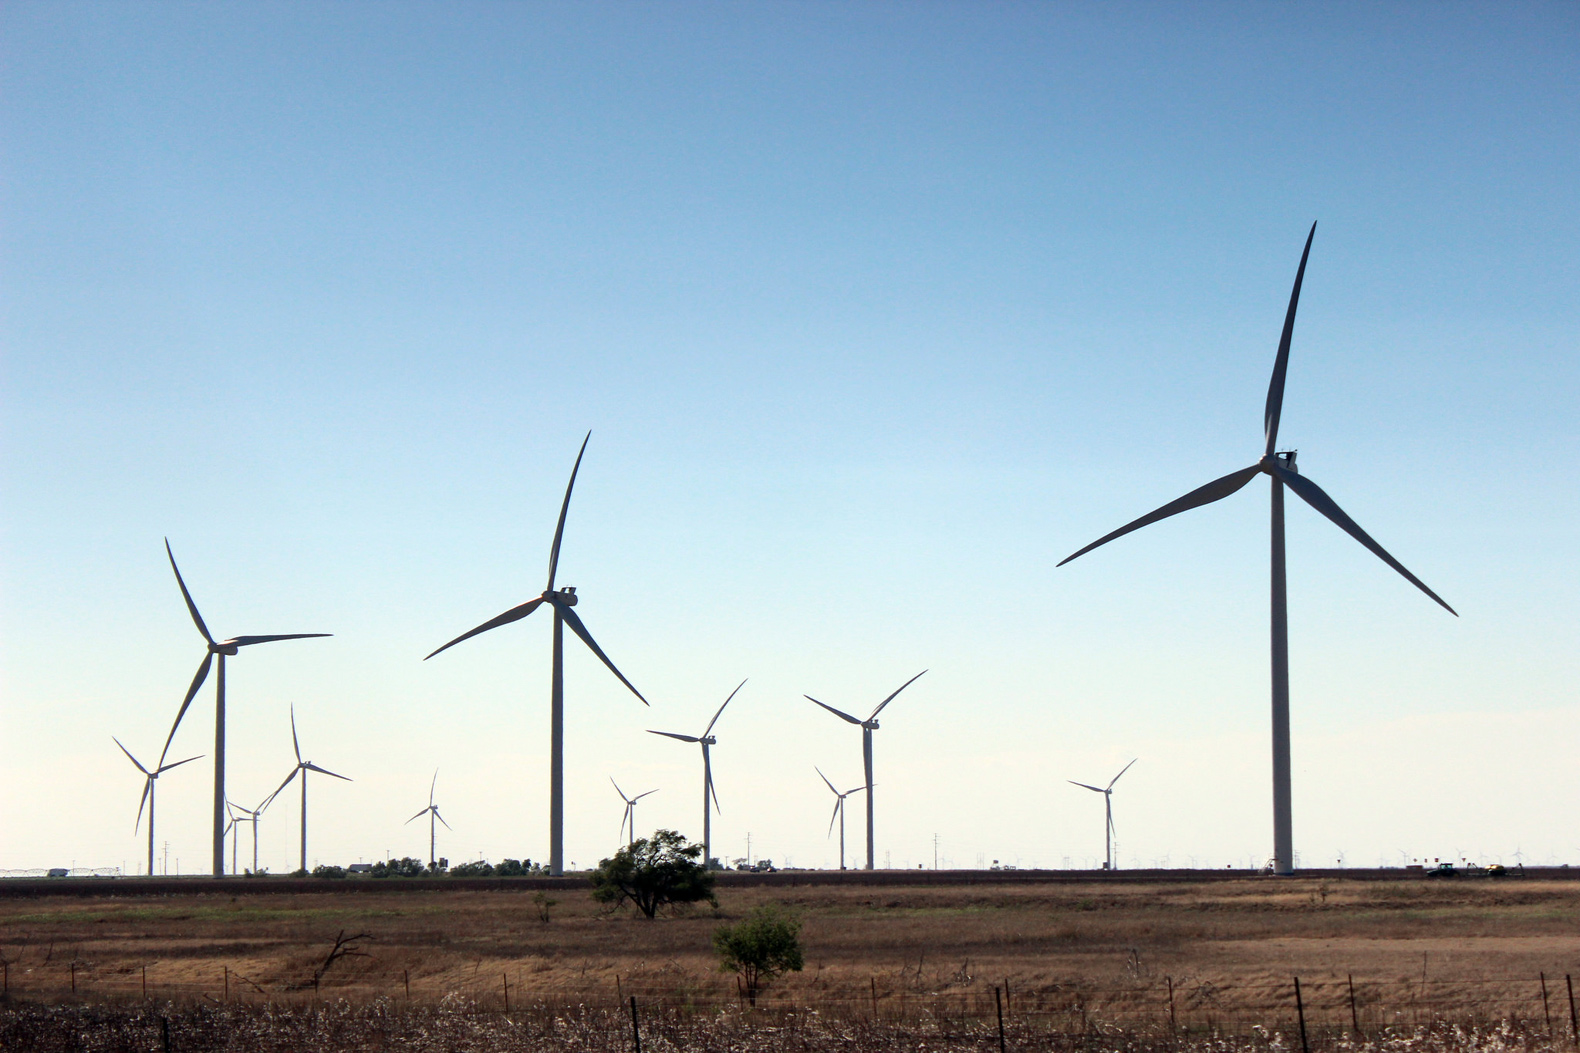 Major utility company Xcel Energy commits to go carbon-free by 2050